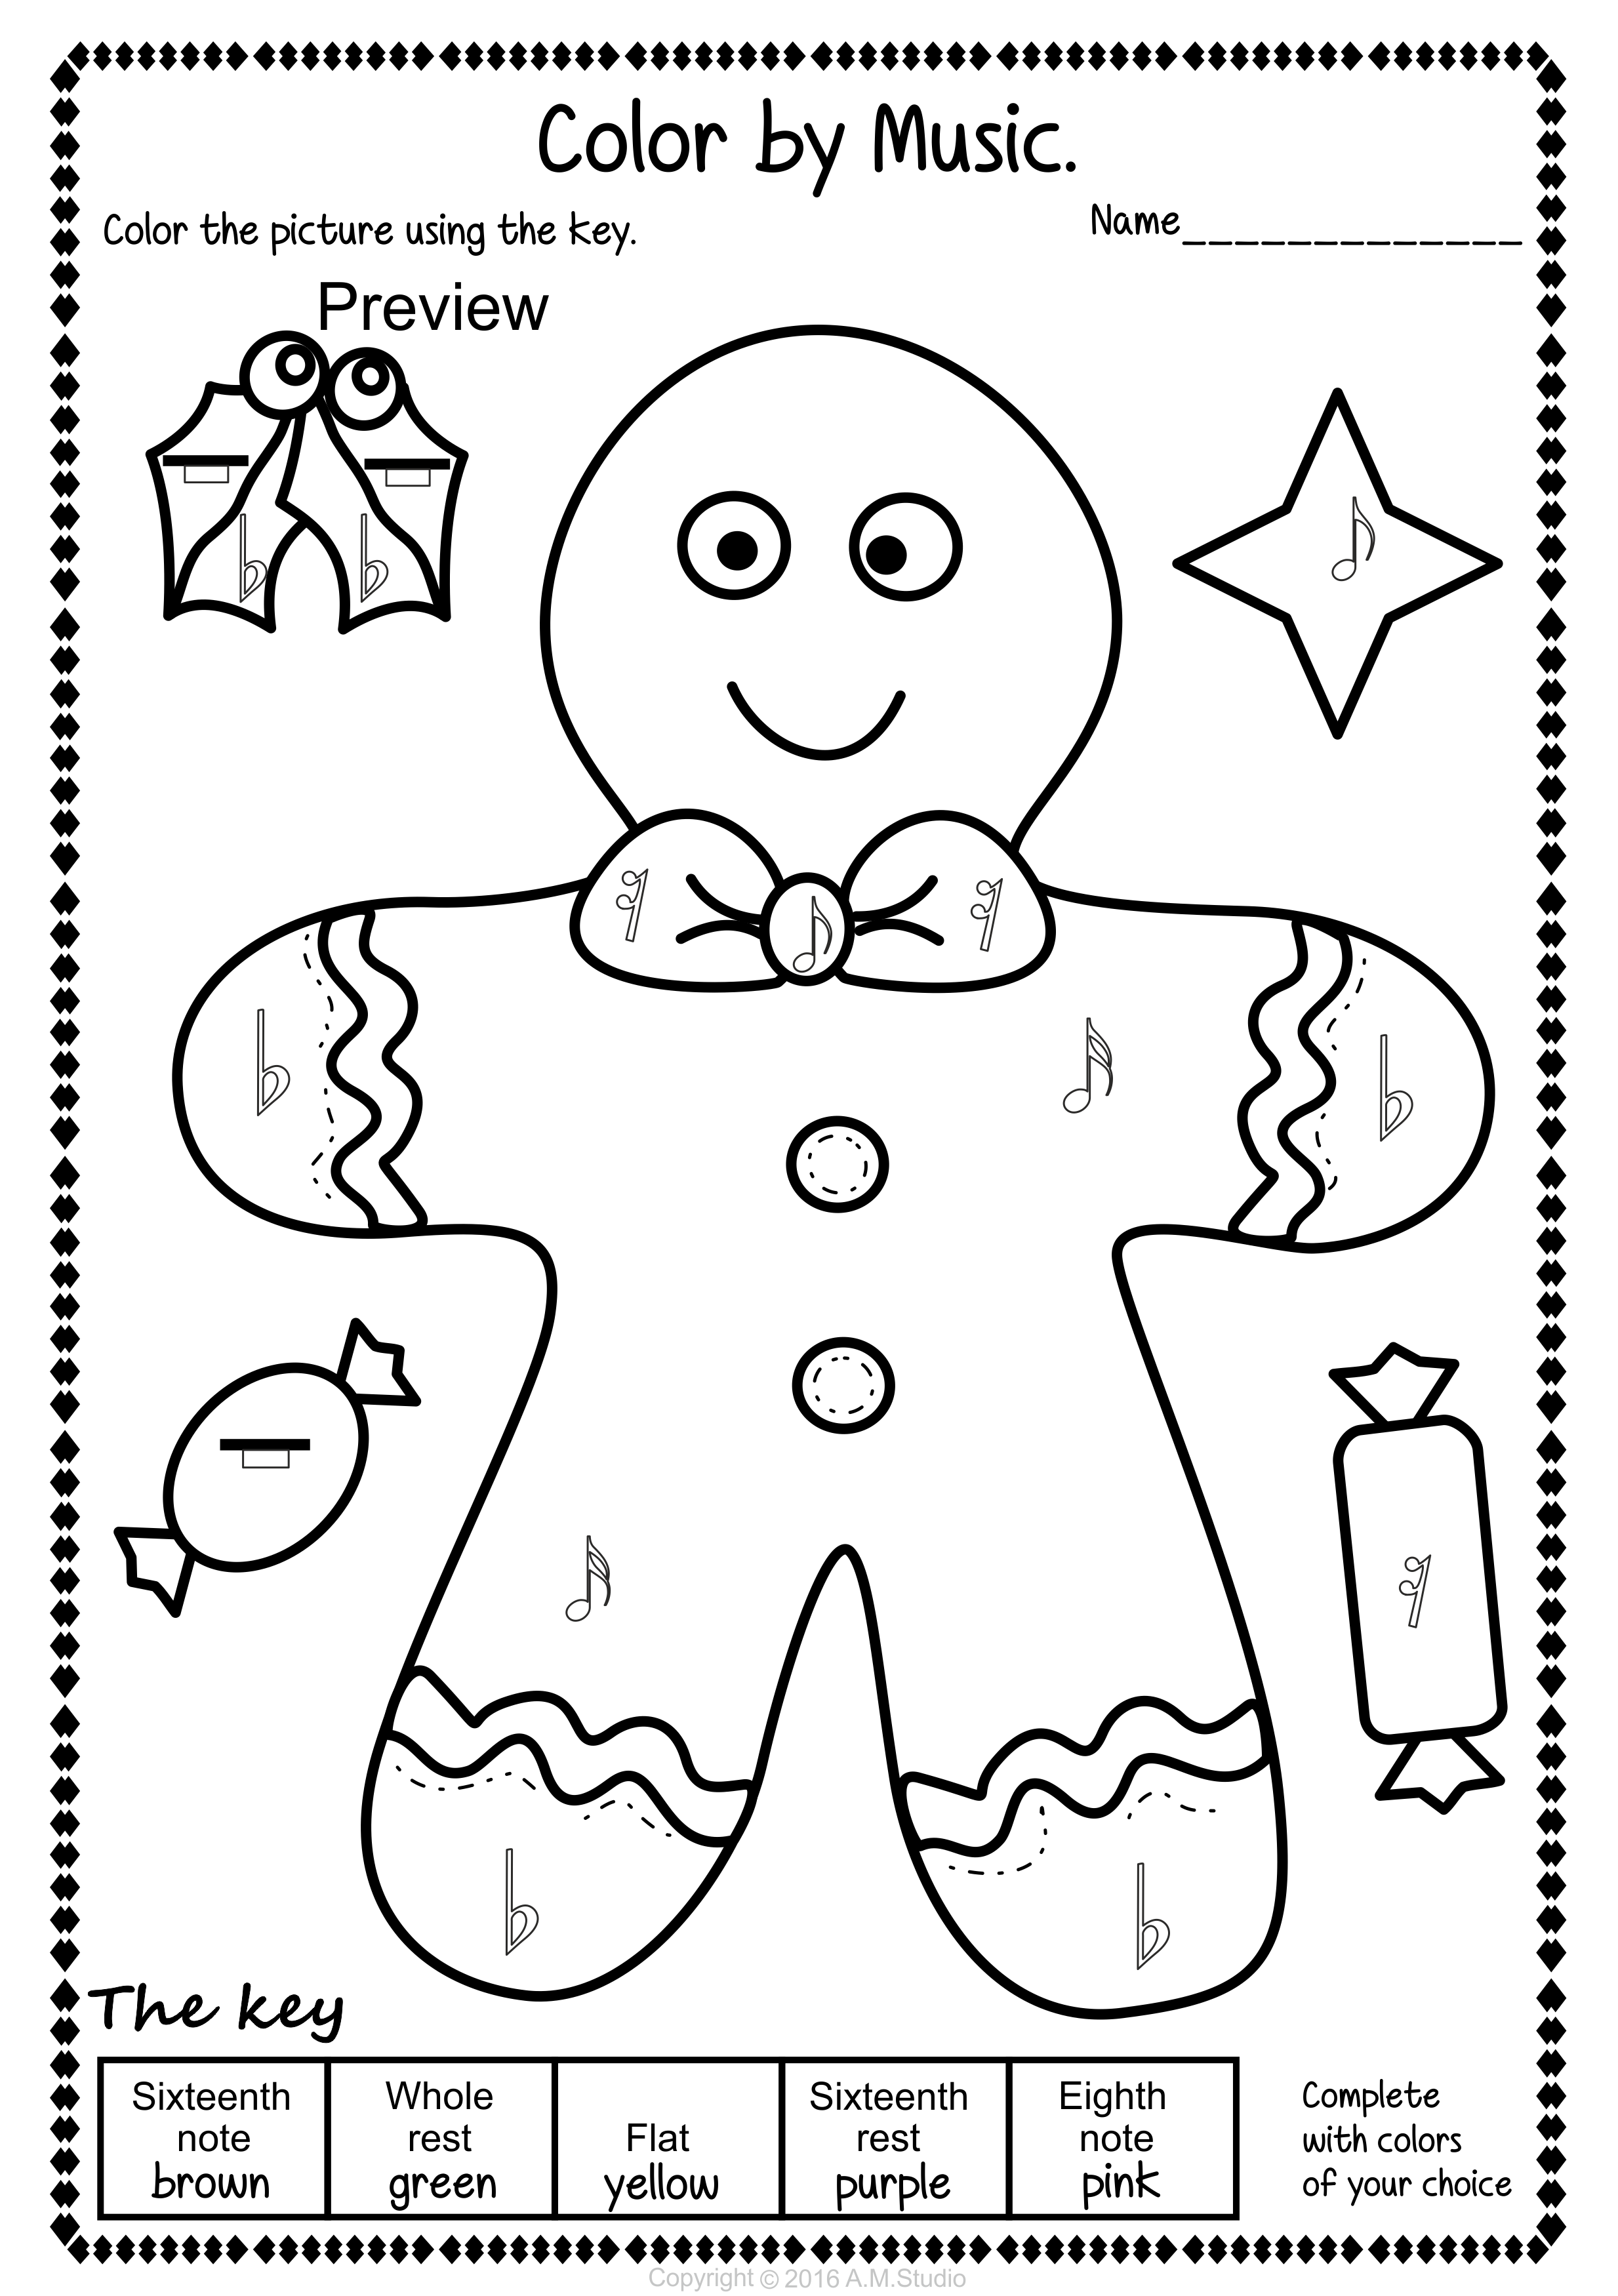 Simple And Fun Christmas Music Coloring Activity For Kids This Set Contains 14 Designs In 3 Christmas Music Activities Christmas Music Coloring Coloring Pages